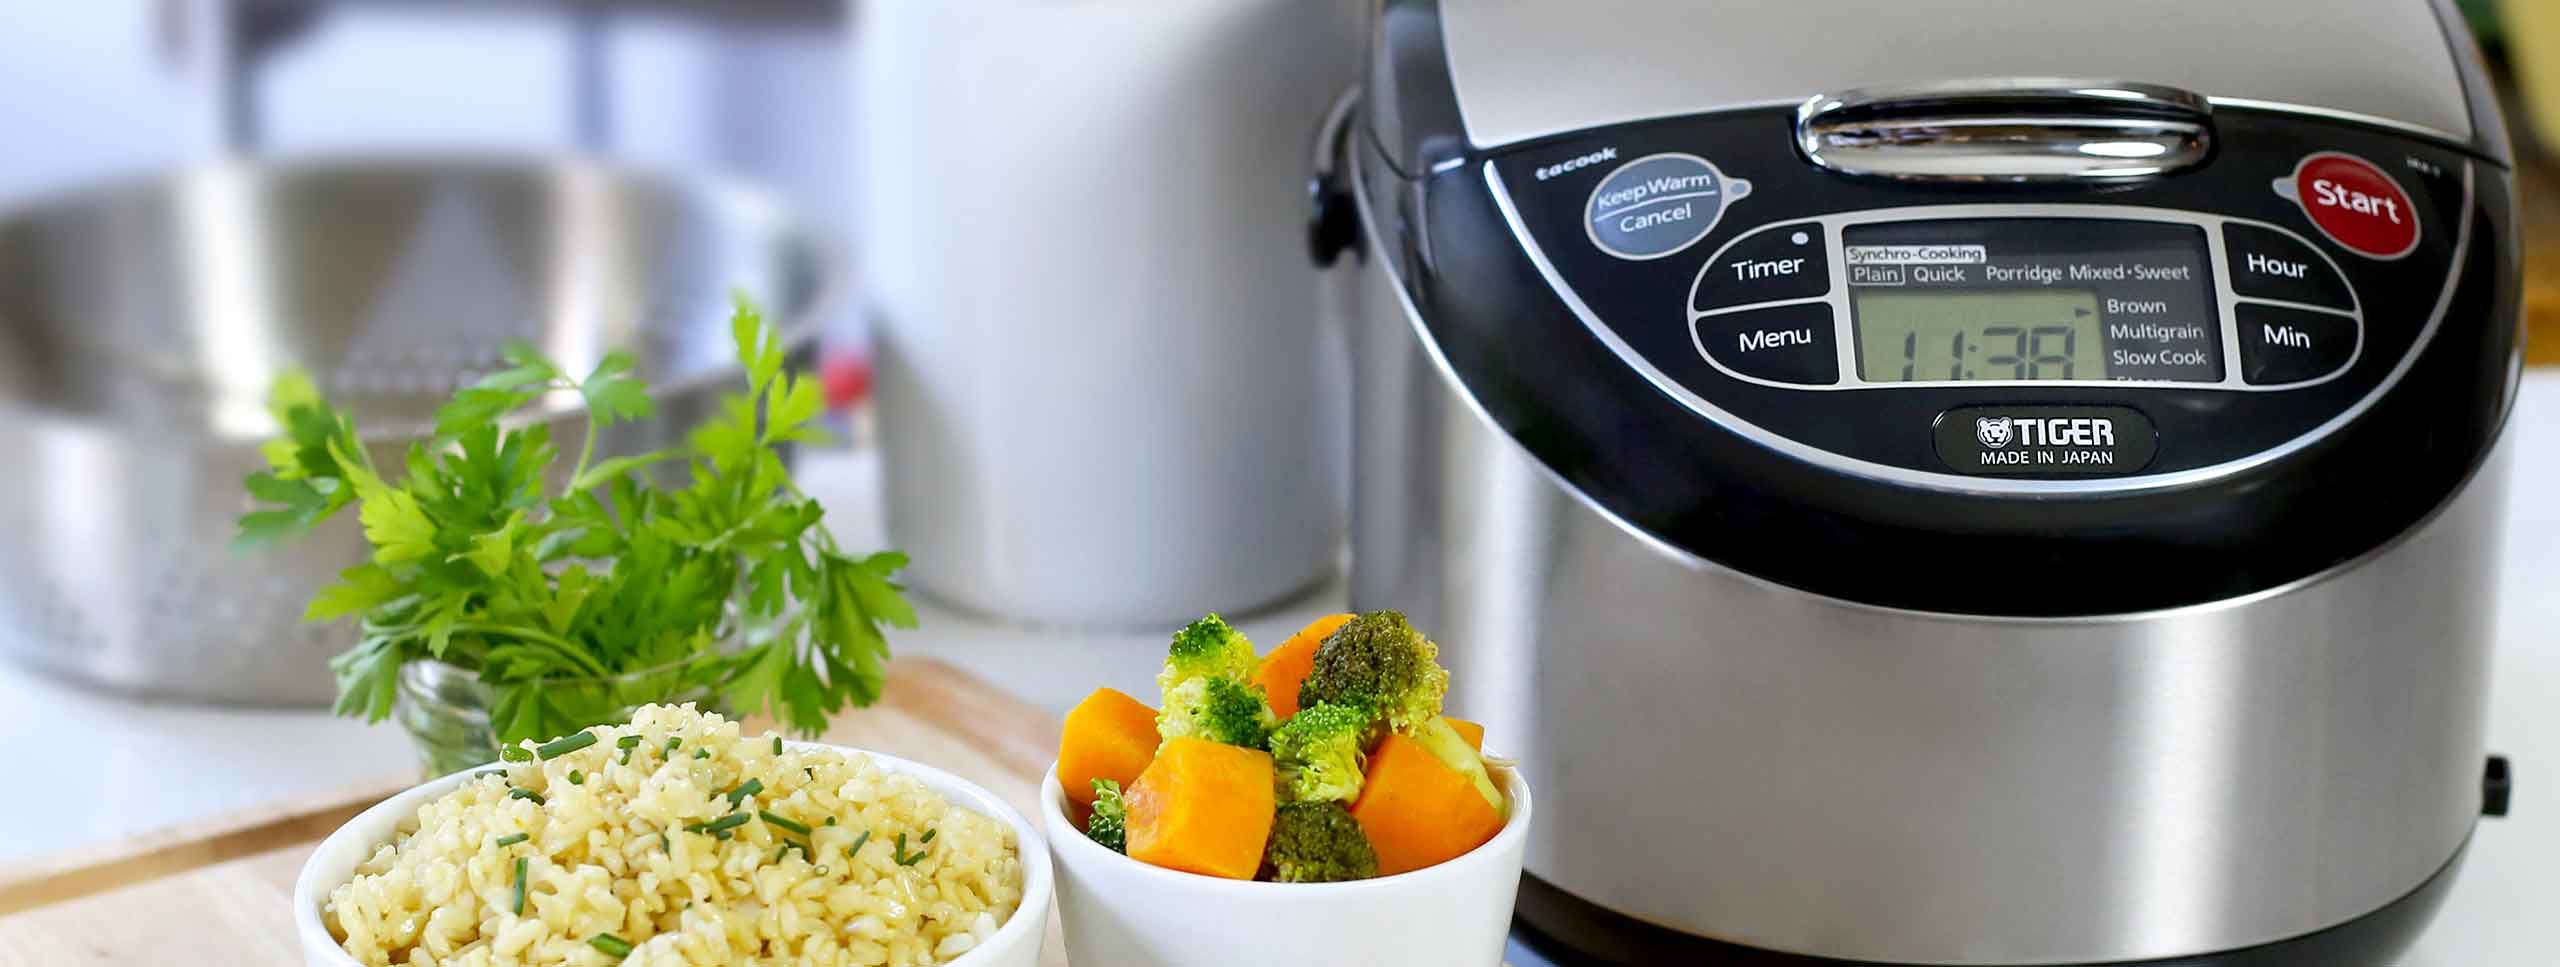 Rice Cookers - TIGER CORPORATION U.S.A. | Rice Cookers, Small kitchen  electronics